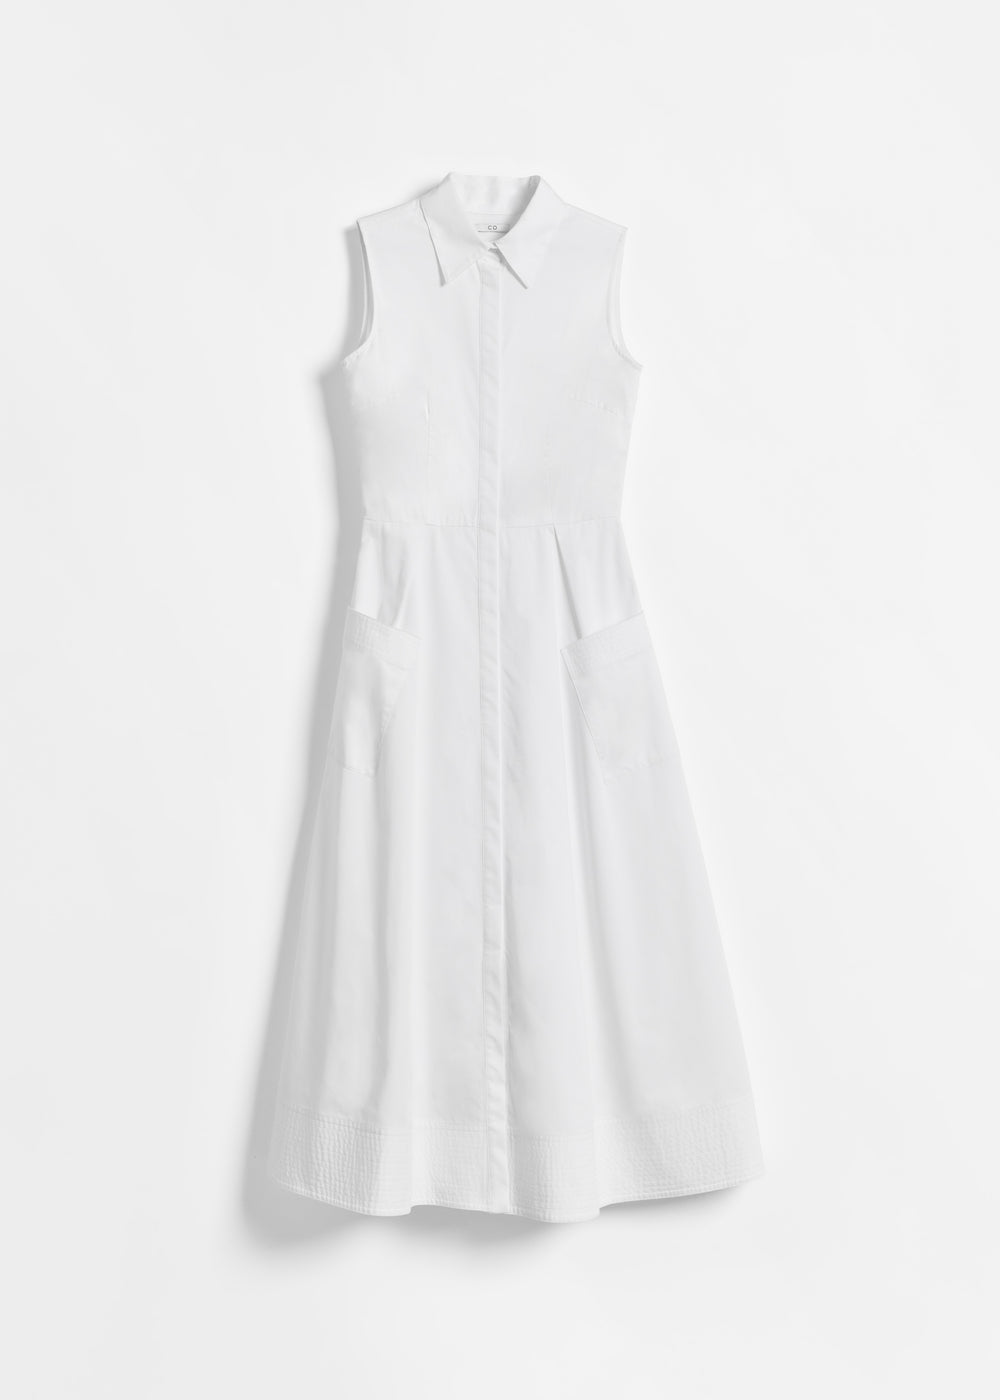 Sleeveless Button Down Dress in Cotton Poplin - Navy in White by Co Collections